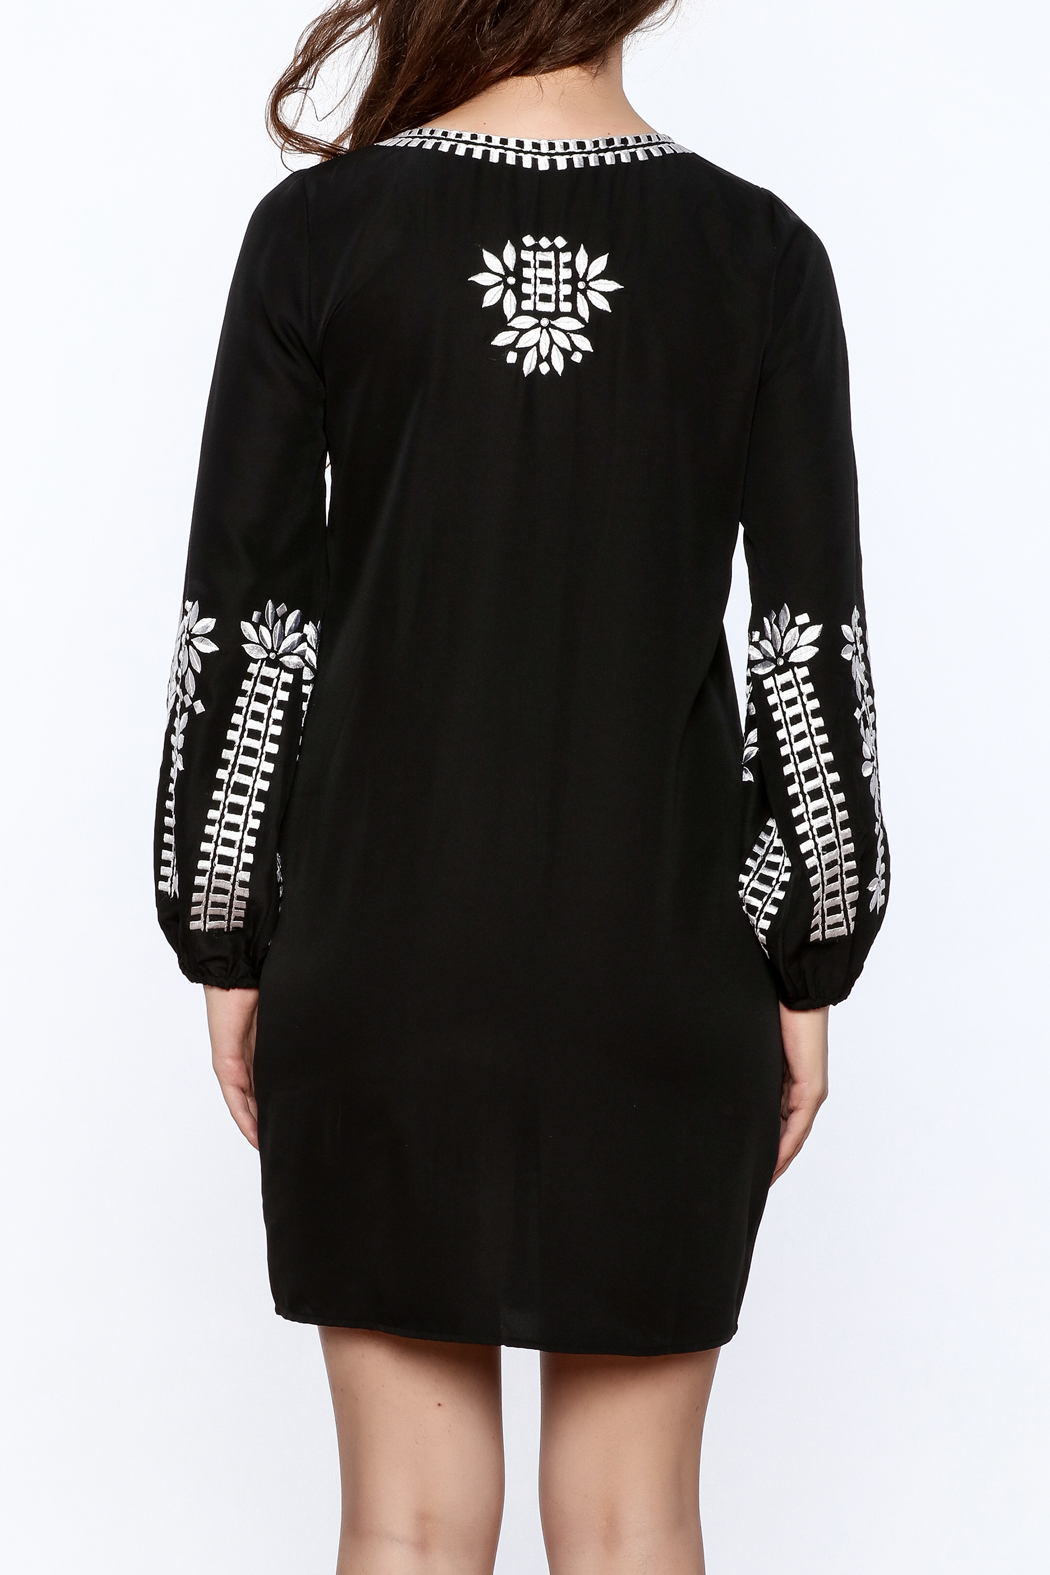 KAS New York Trudy Embroidered Dress - Back Cropped Image